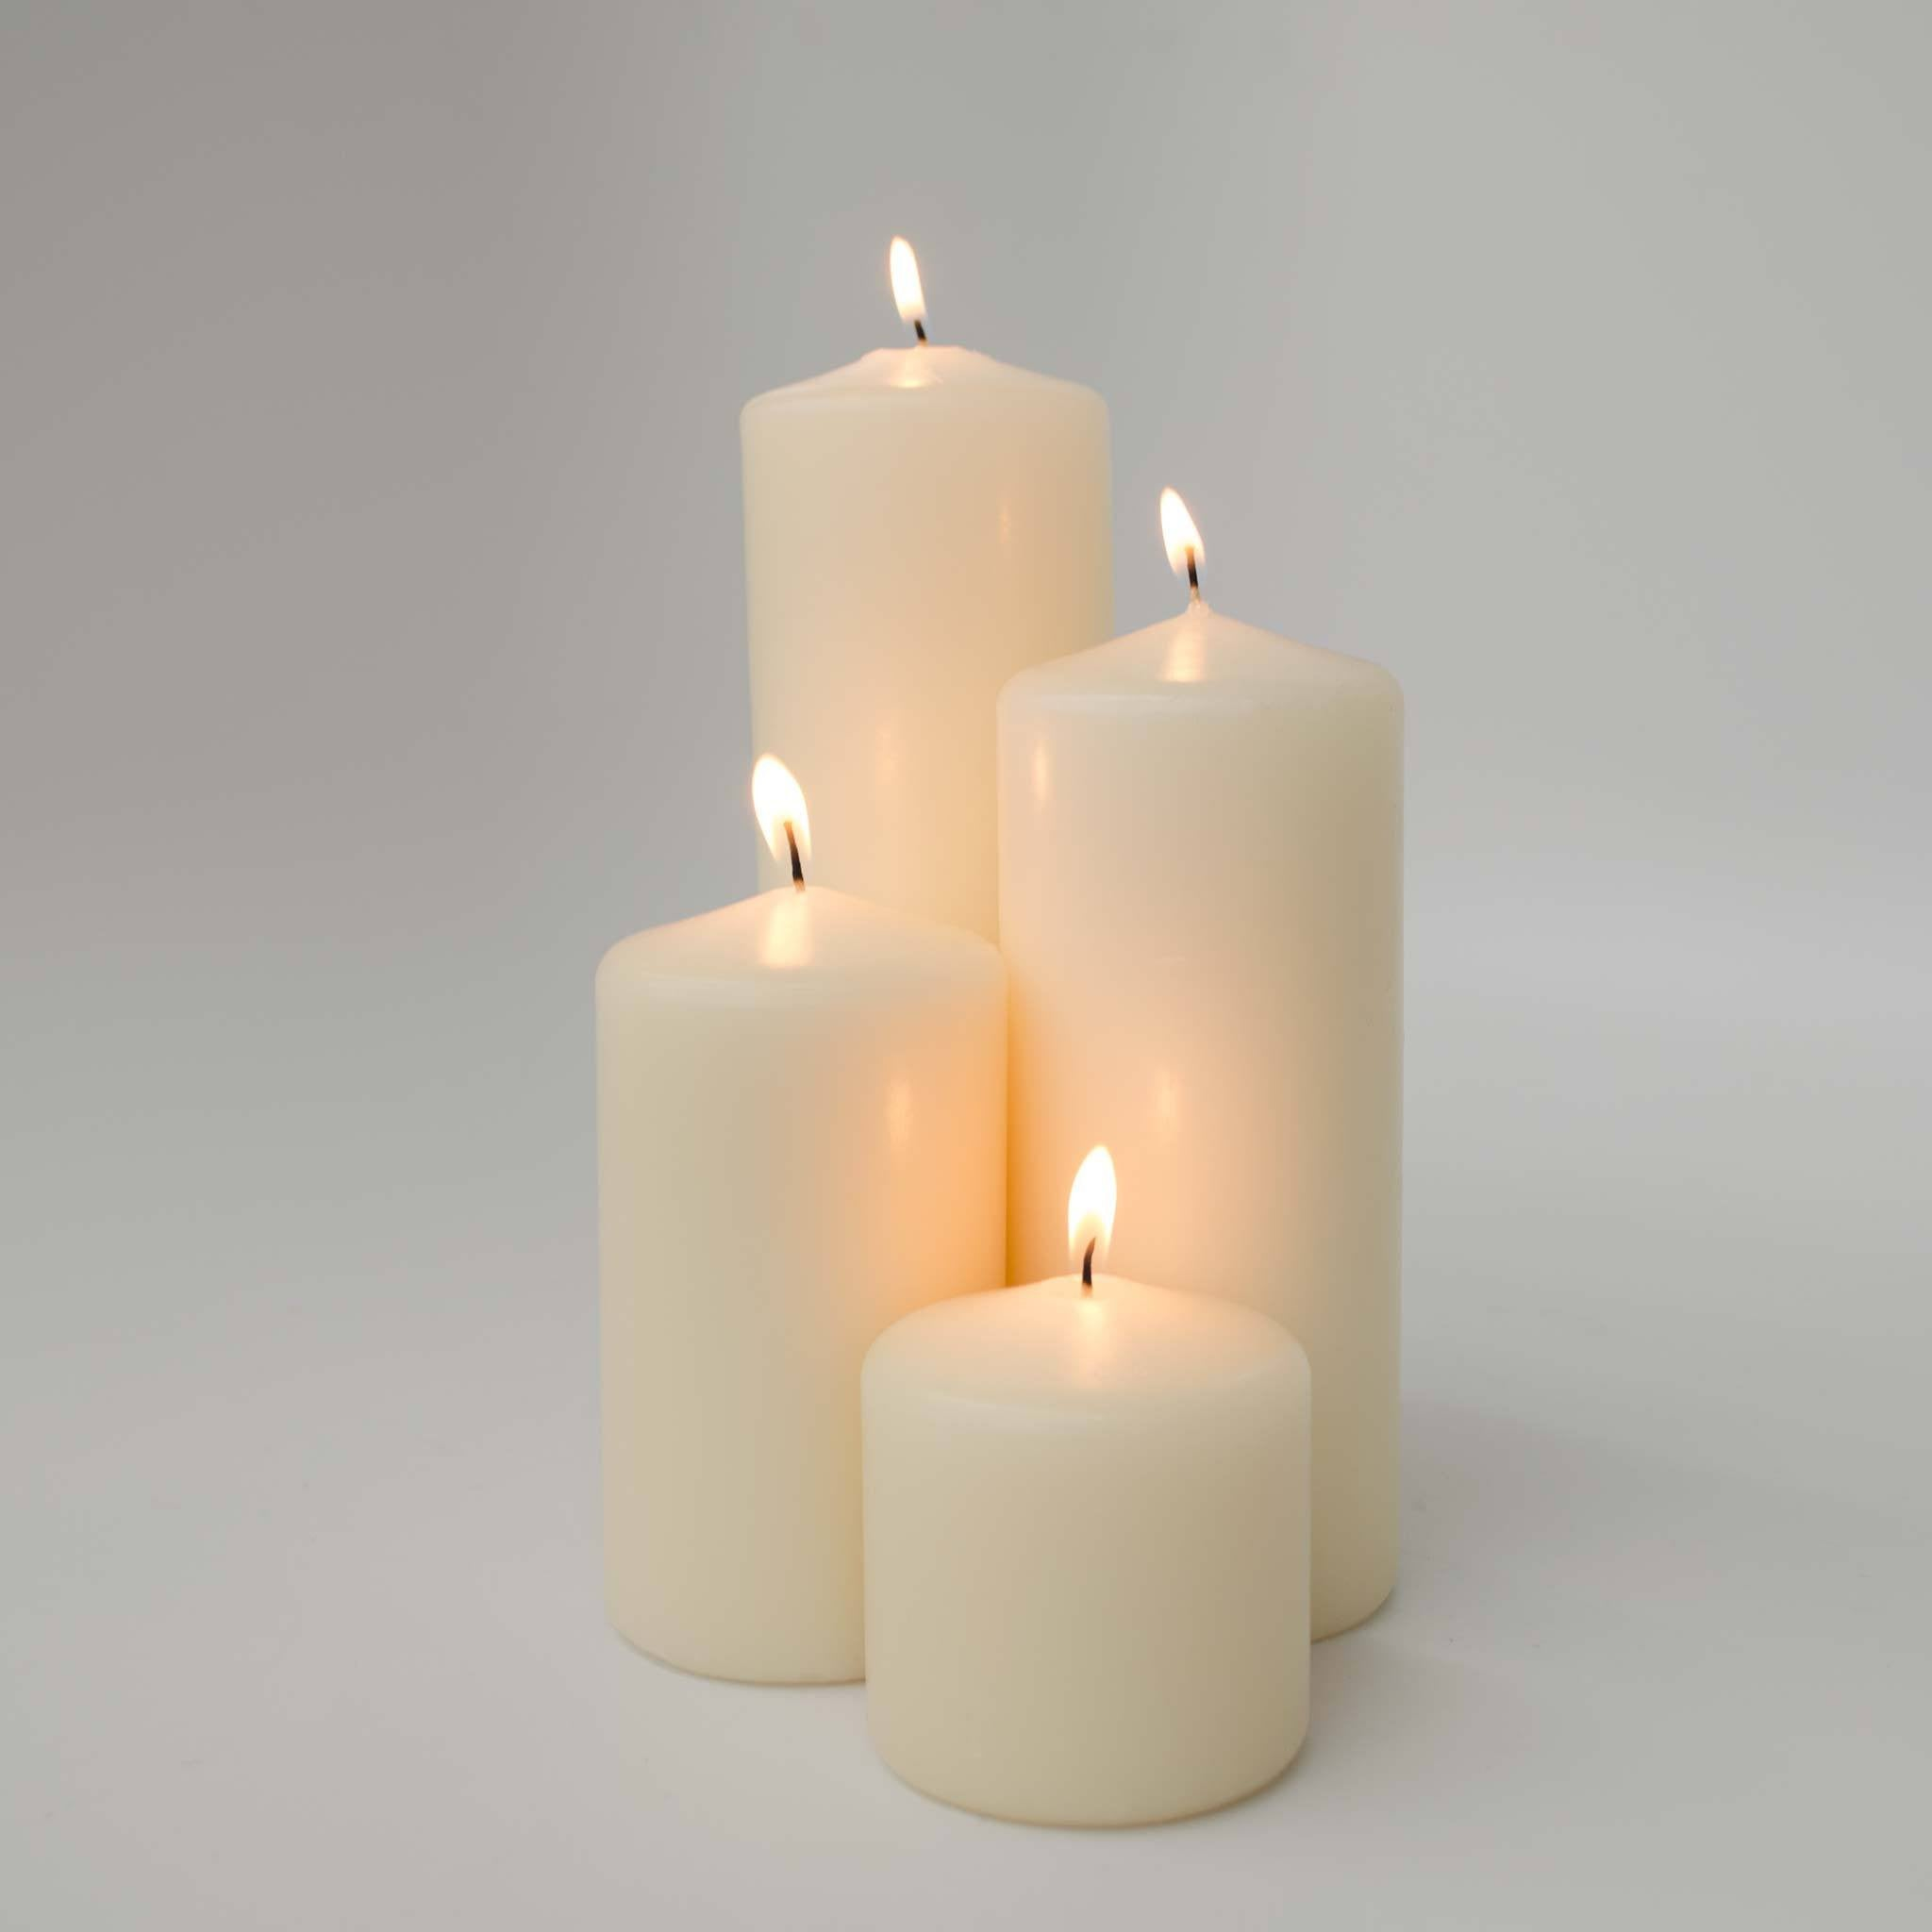 Ivory 24 Pillar Candle Bundle: includes 6 of the 3x3, 3x5, 3x7 and 3x9 Pillar Candles - WeddingCandles.com